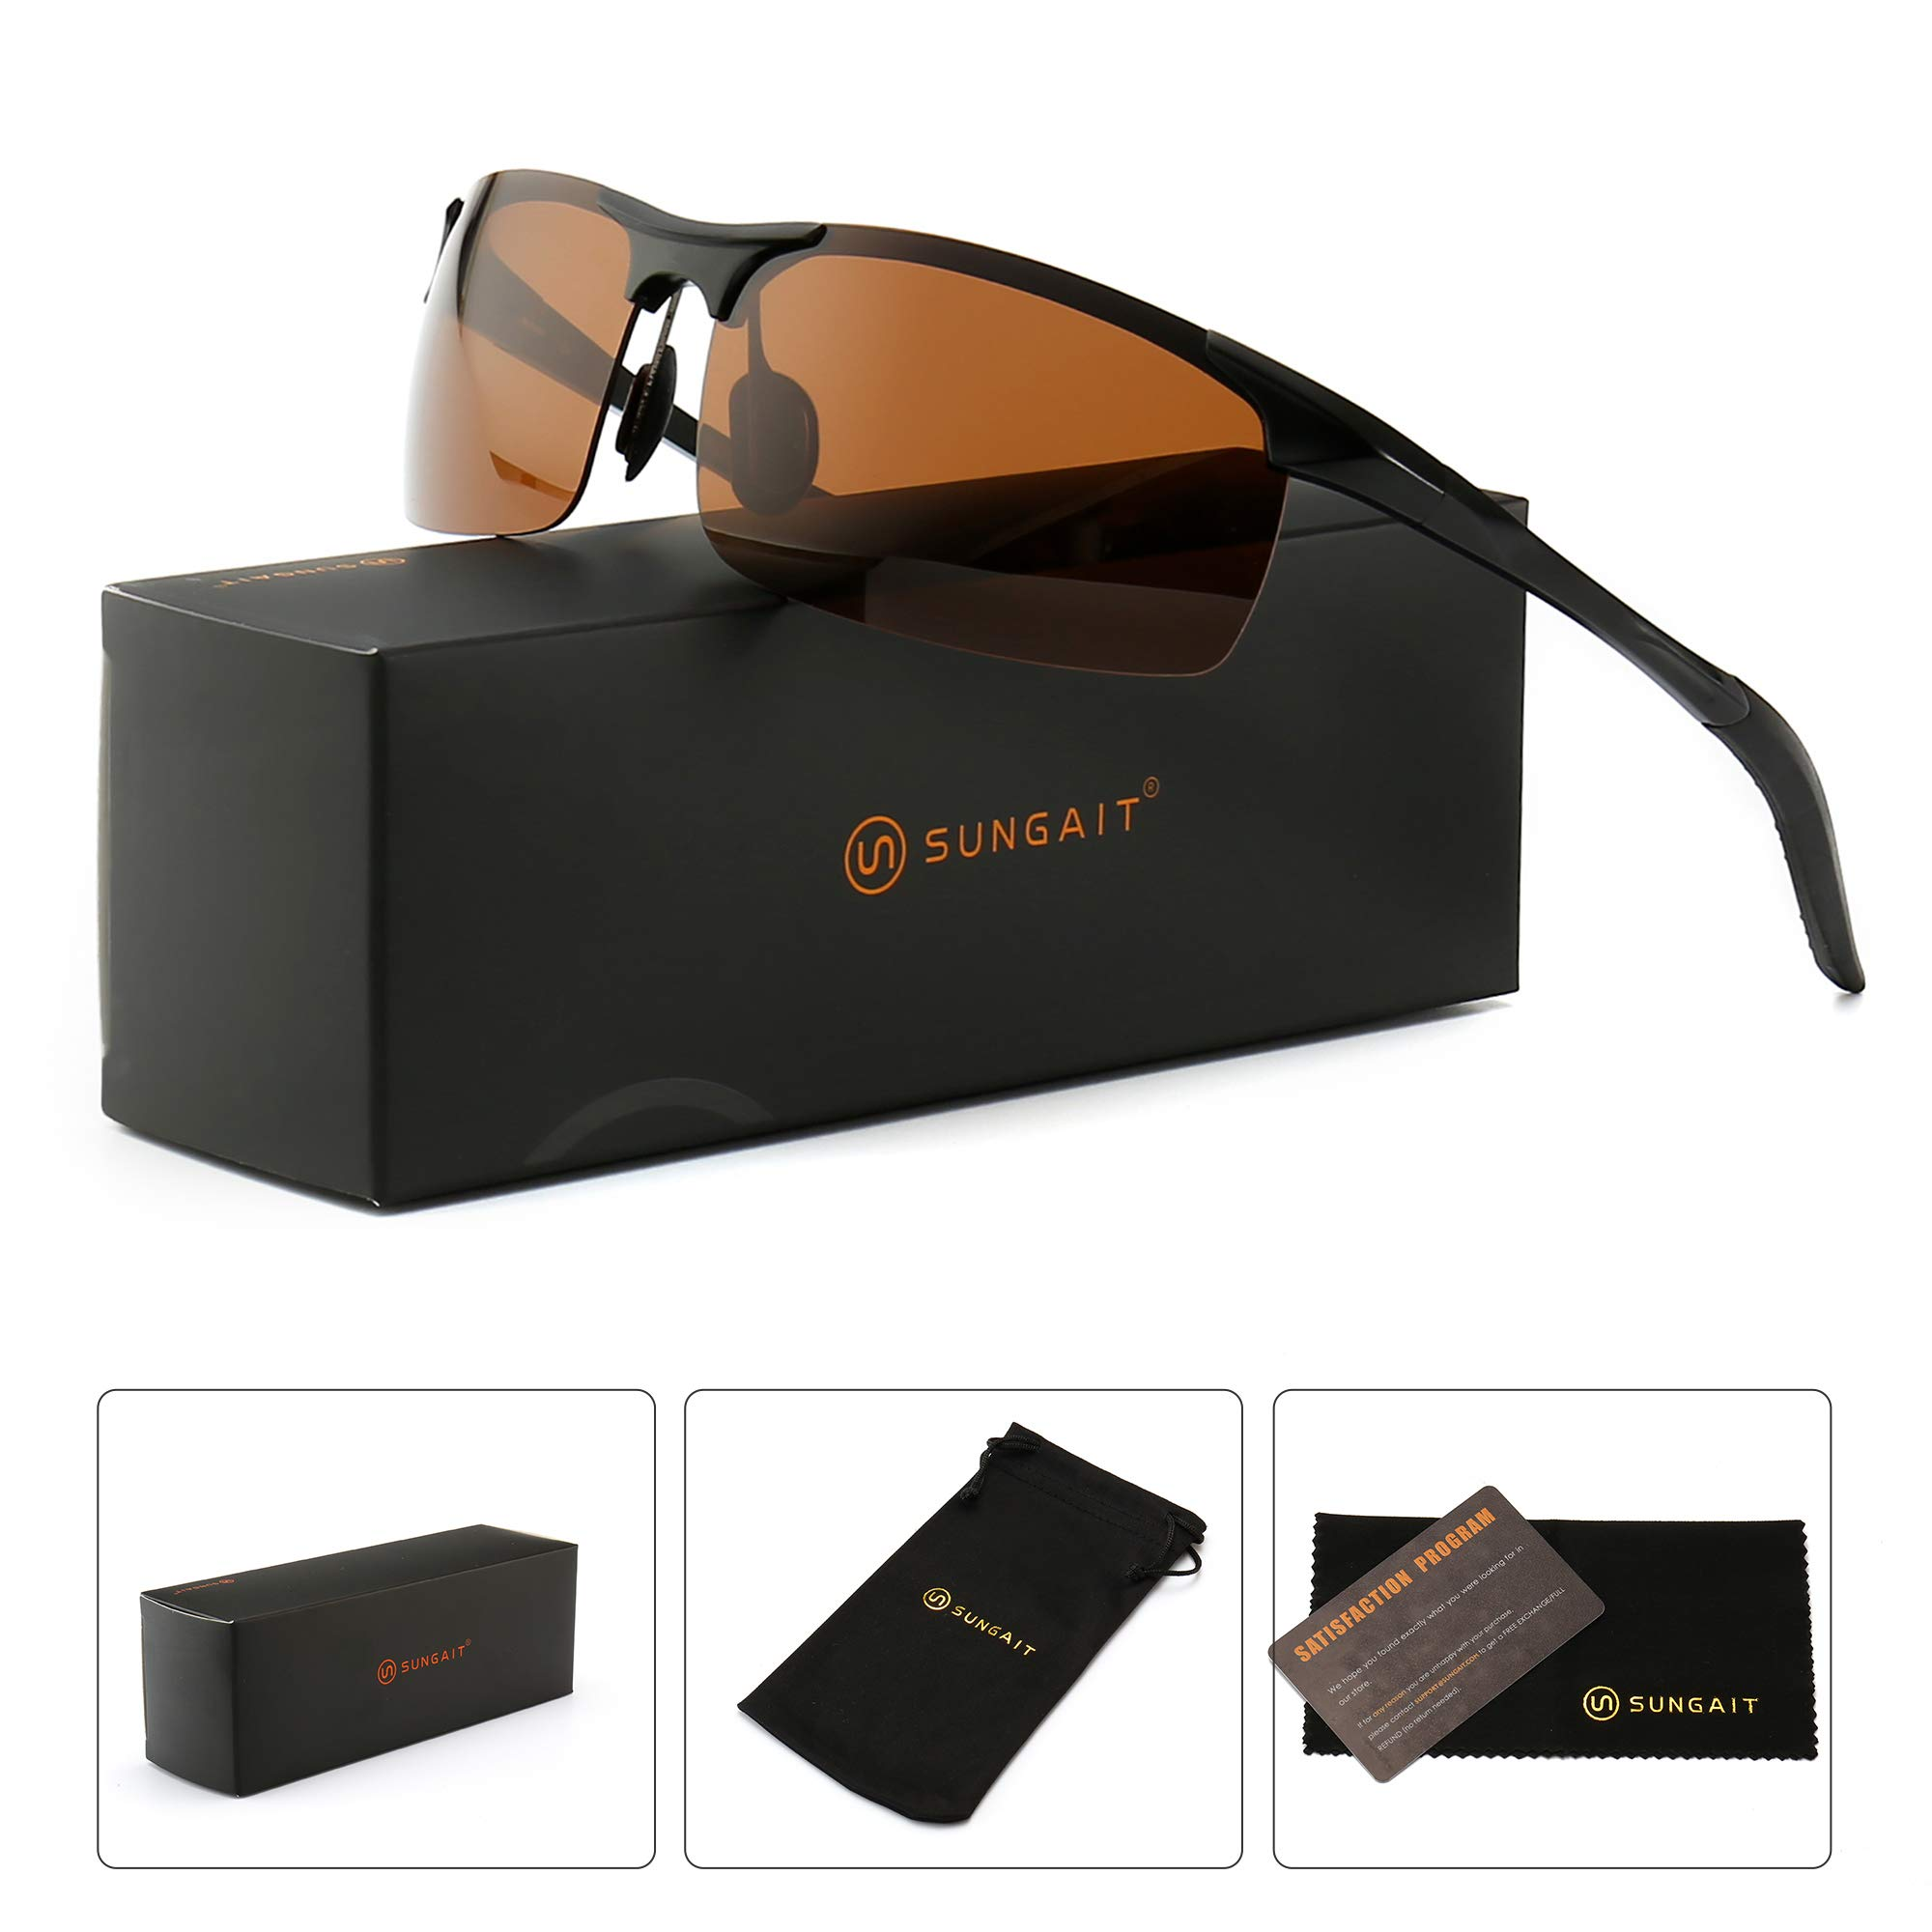 07bbd76bc30 SUNGAIT Men s Polarized Sunglasses for Driving Fishing Golf Metal Frame  UV400 product image